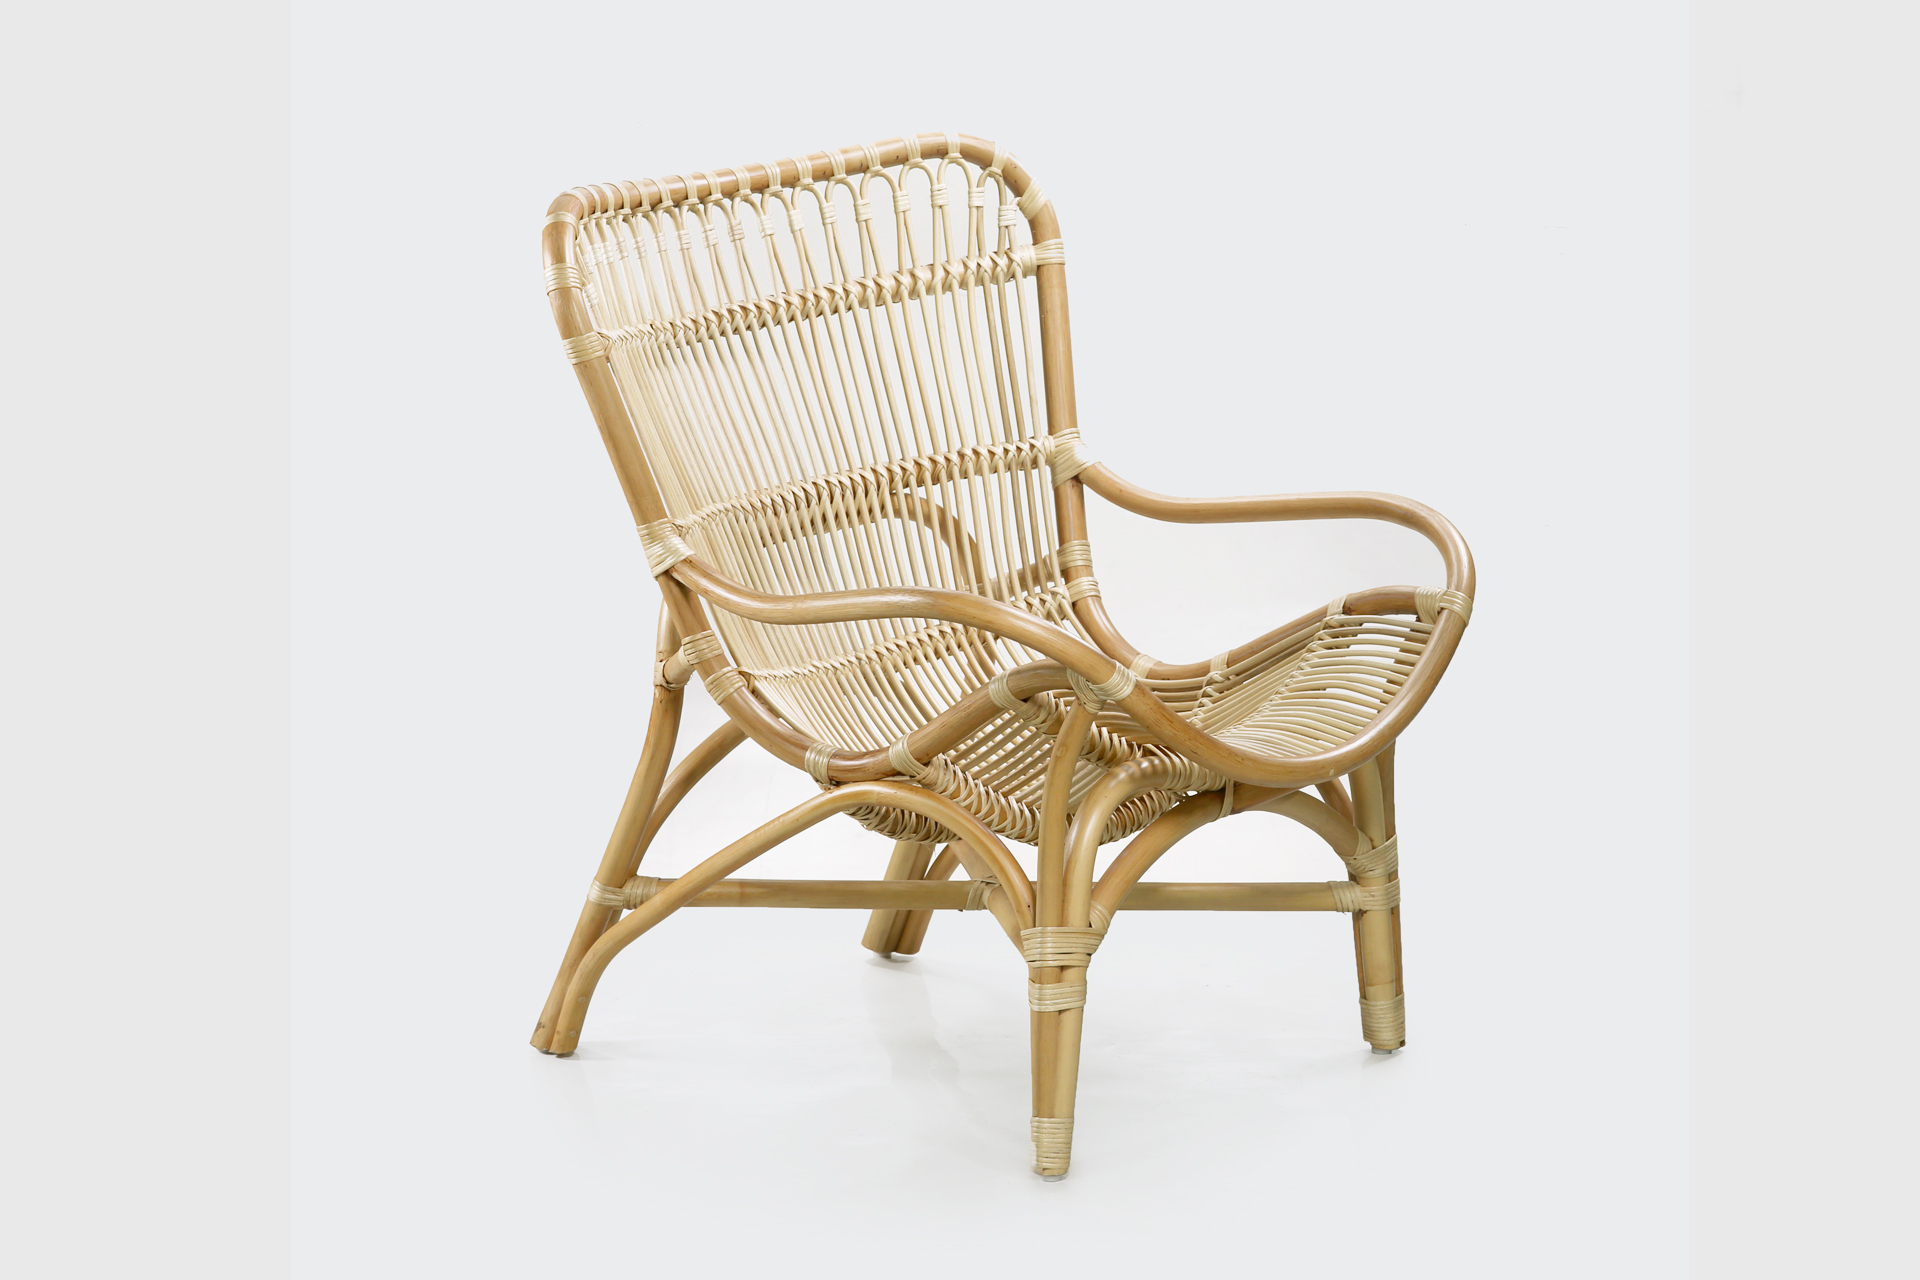 Butterfly Chairs Target Butterfly Chair Side Ls Naturally Cane Rattan And Wicker